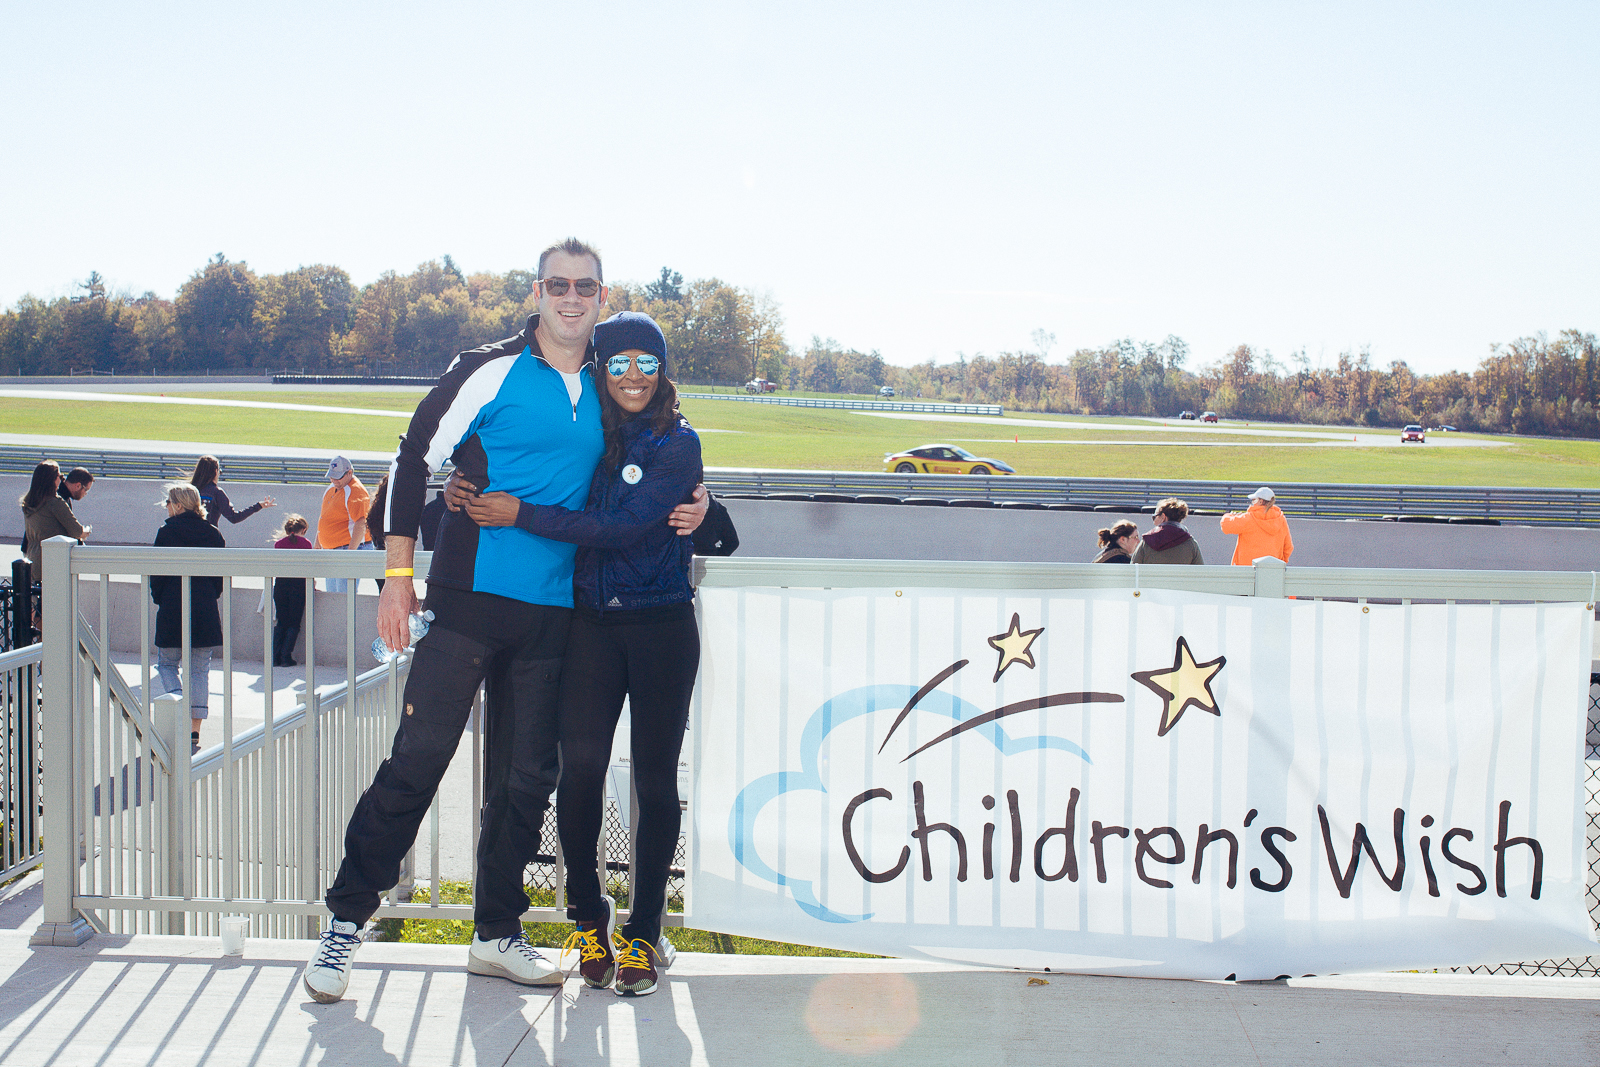 Scotia Challenge Children's Wish